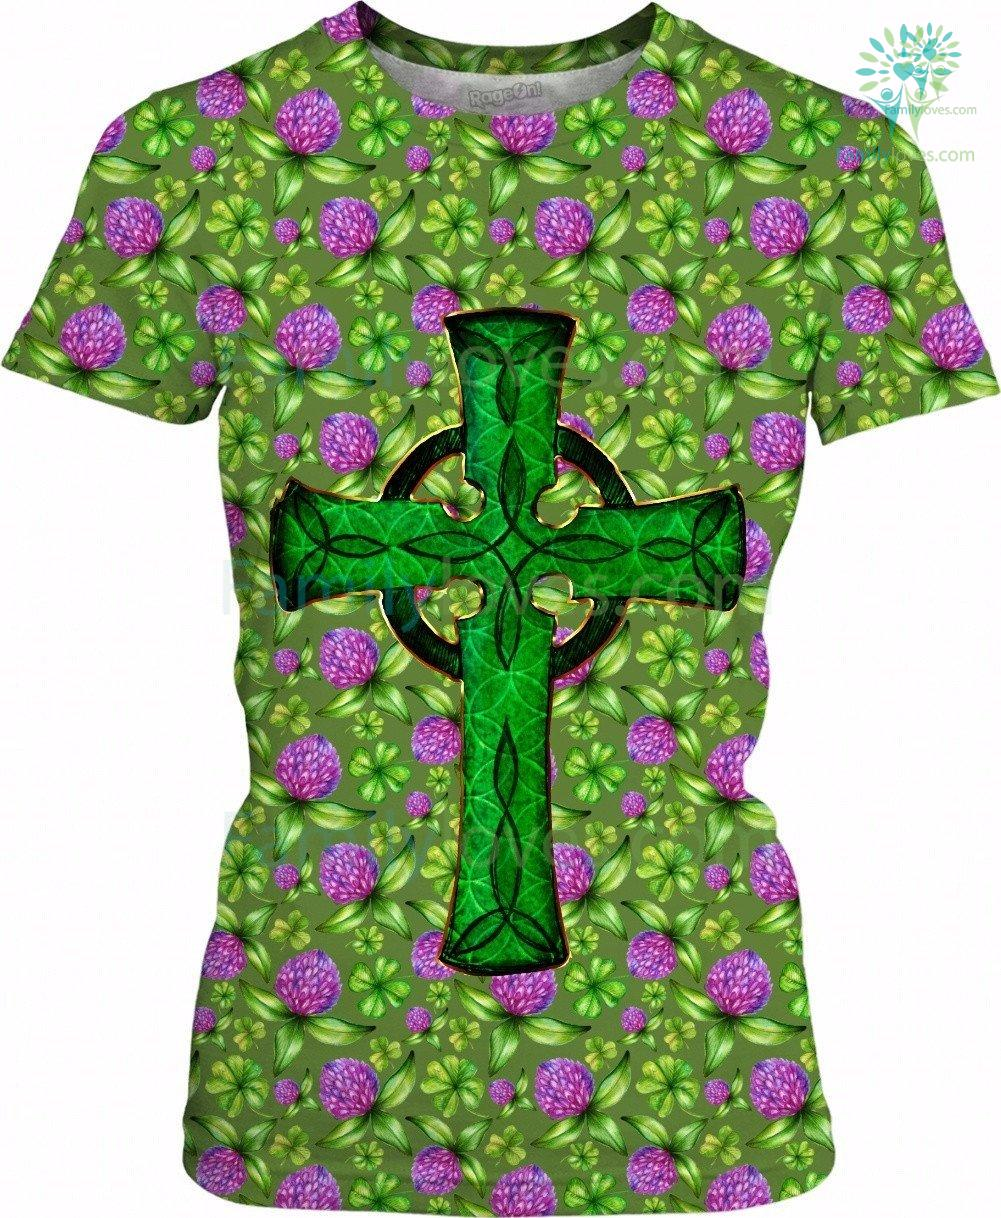 irish girl St. Patricks shirt, St. Patrick's Day shirt, St. Patricks day, St Pattys day shirt, Sizes S-5XL %tag familyloves.com